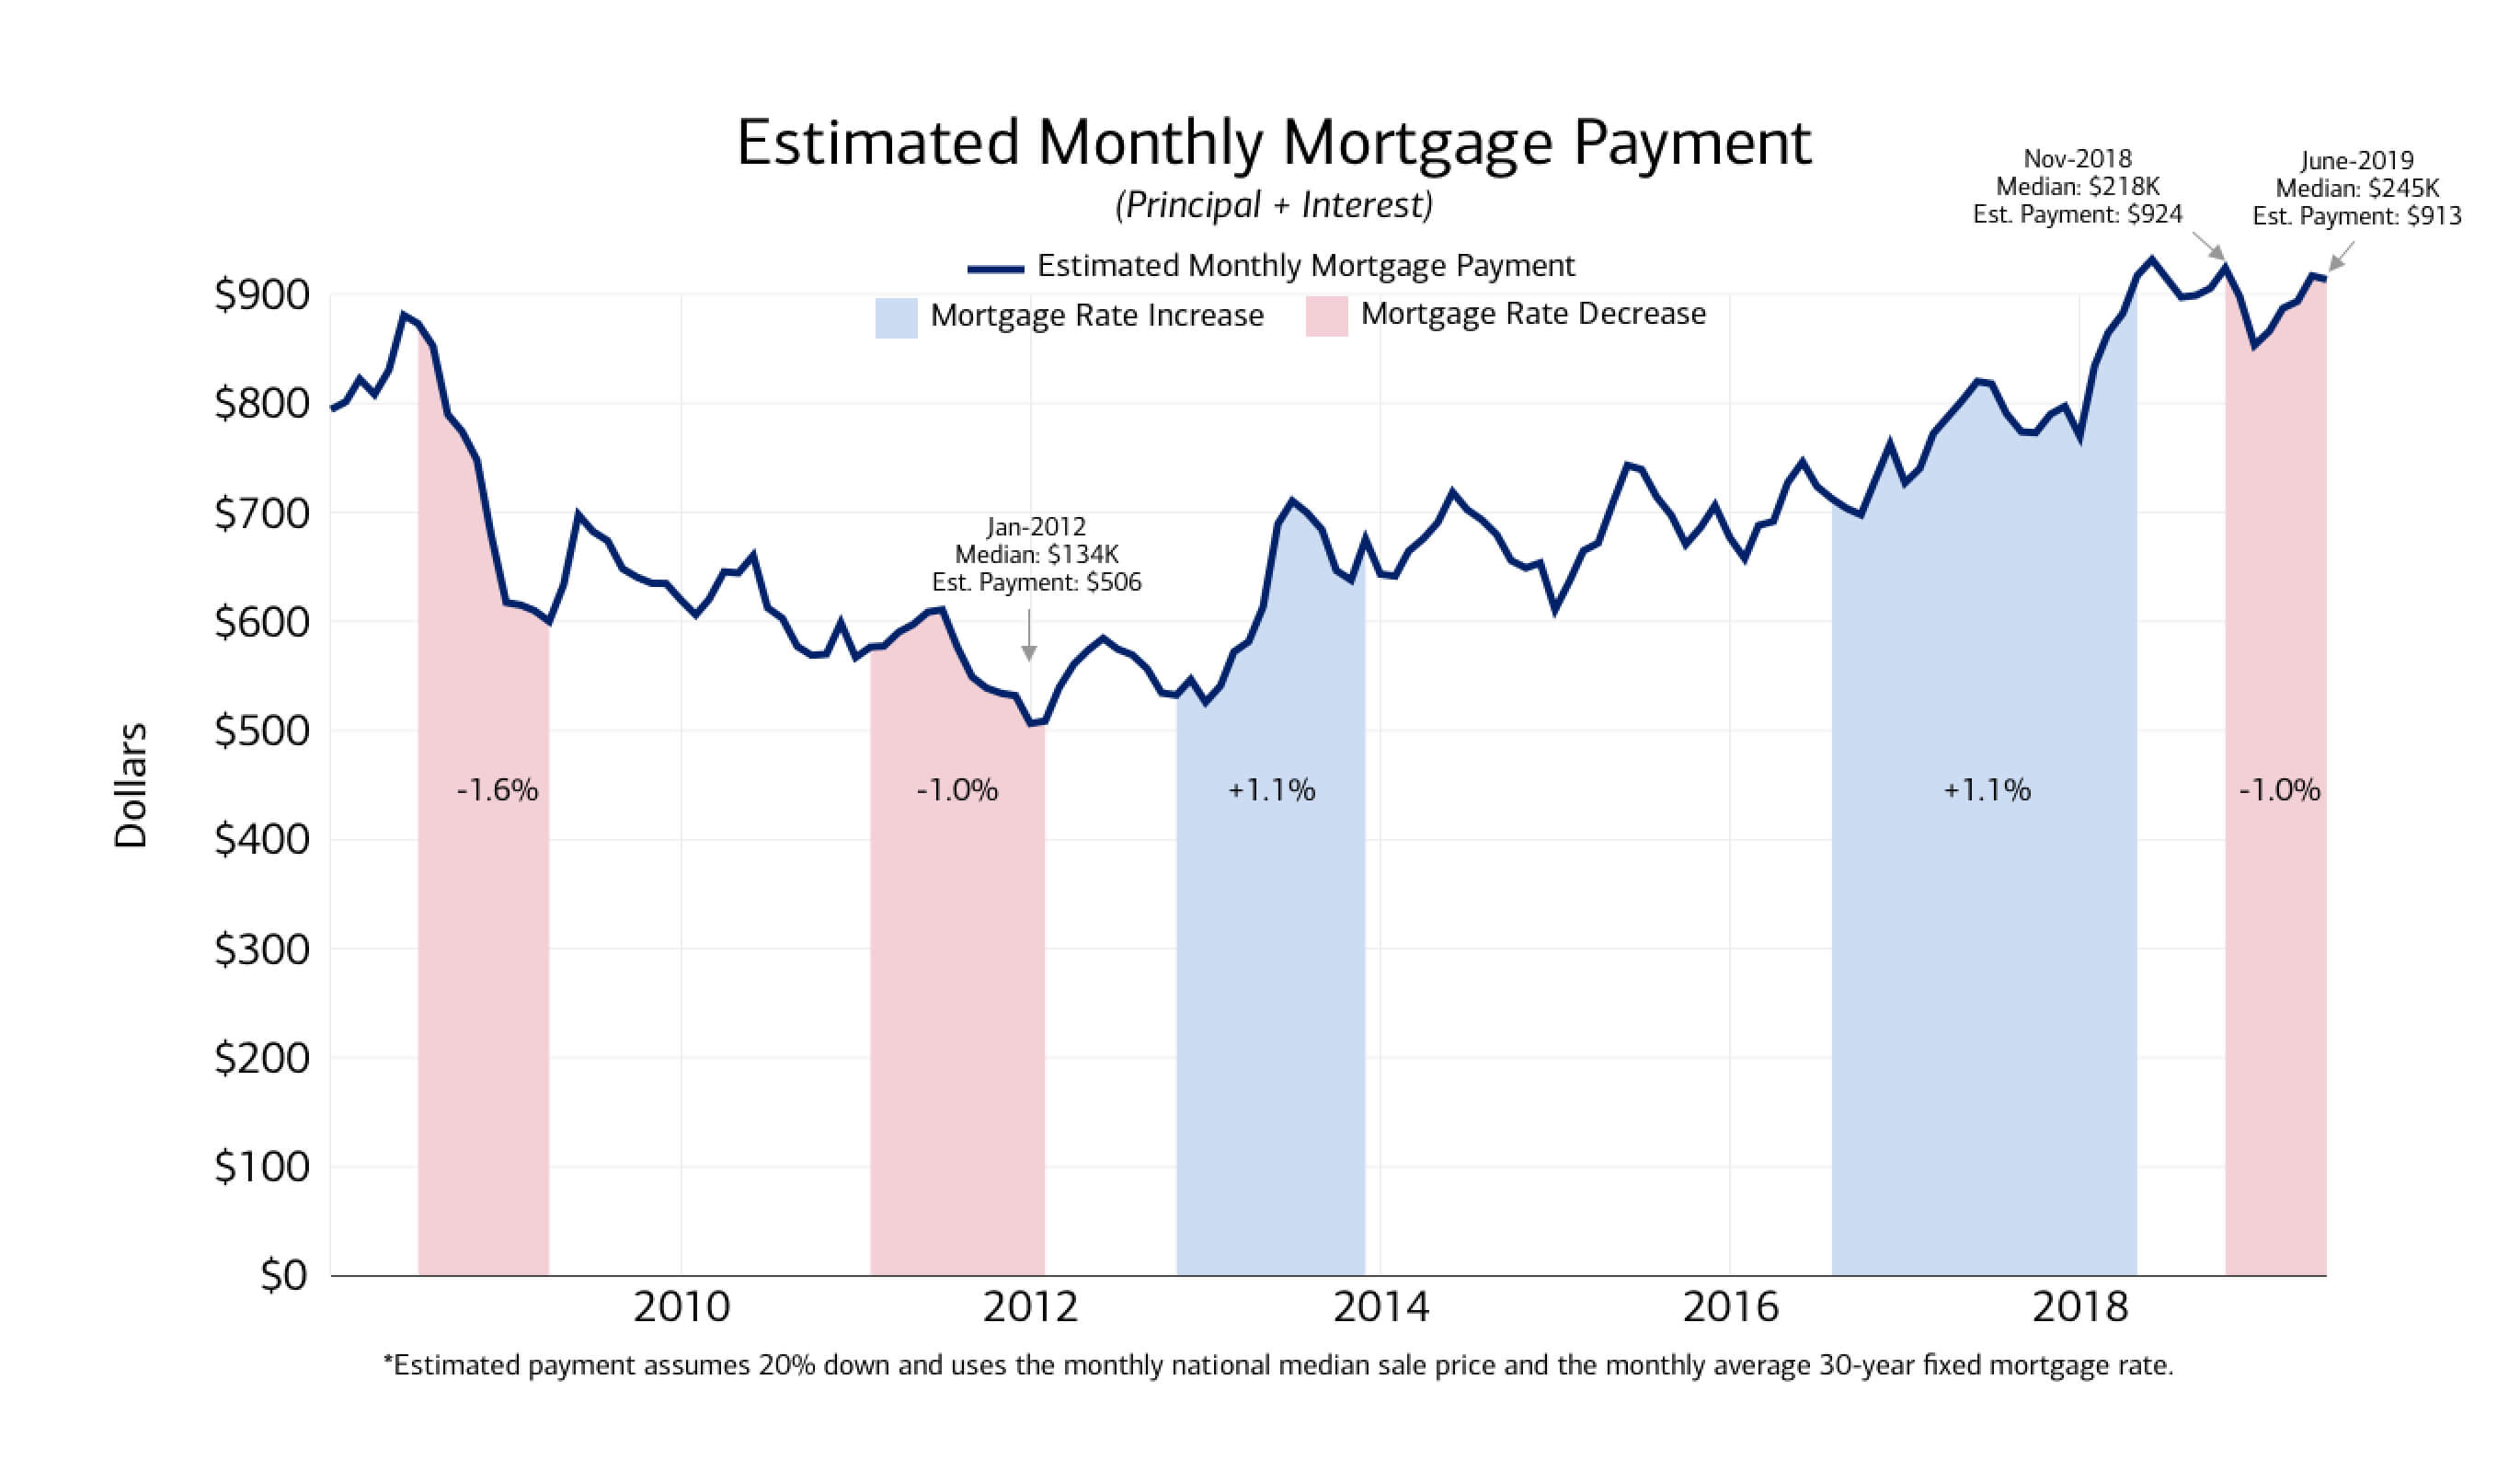 Estimated Monthly Mortgage Payment